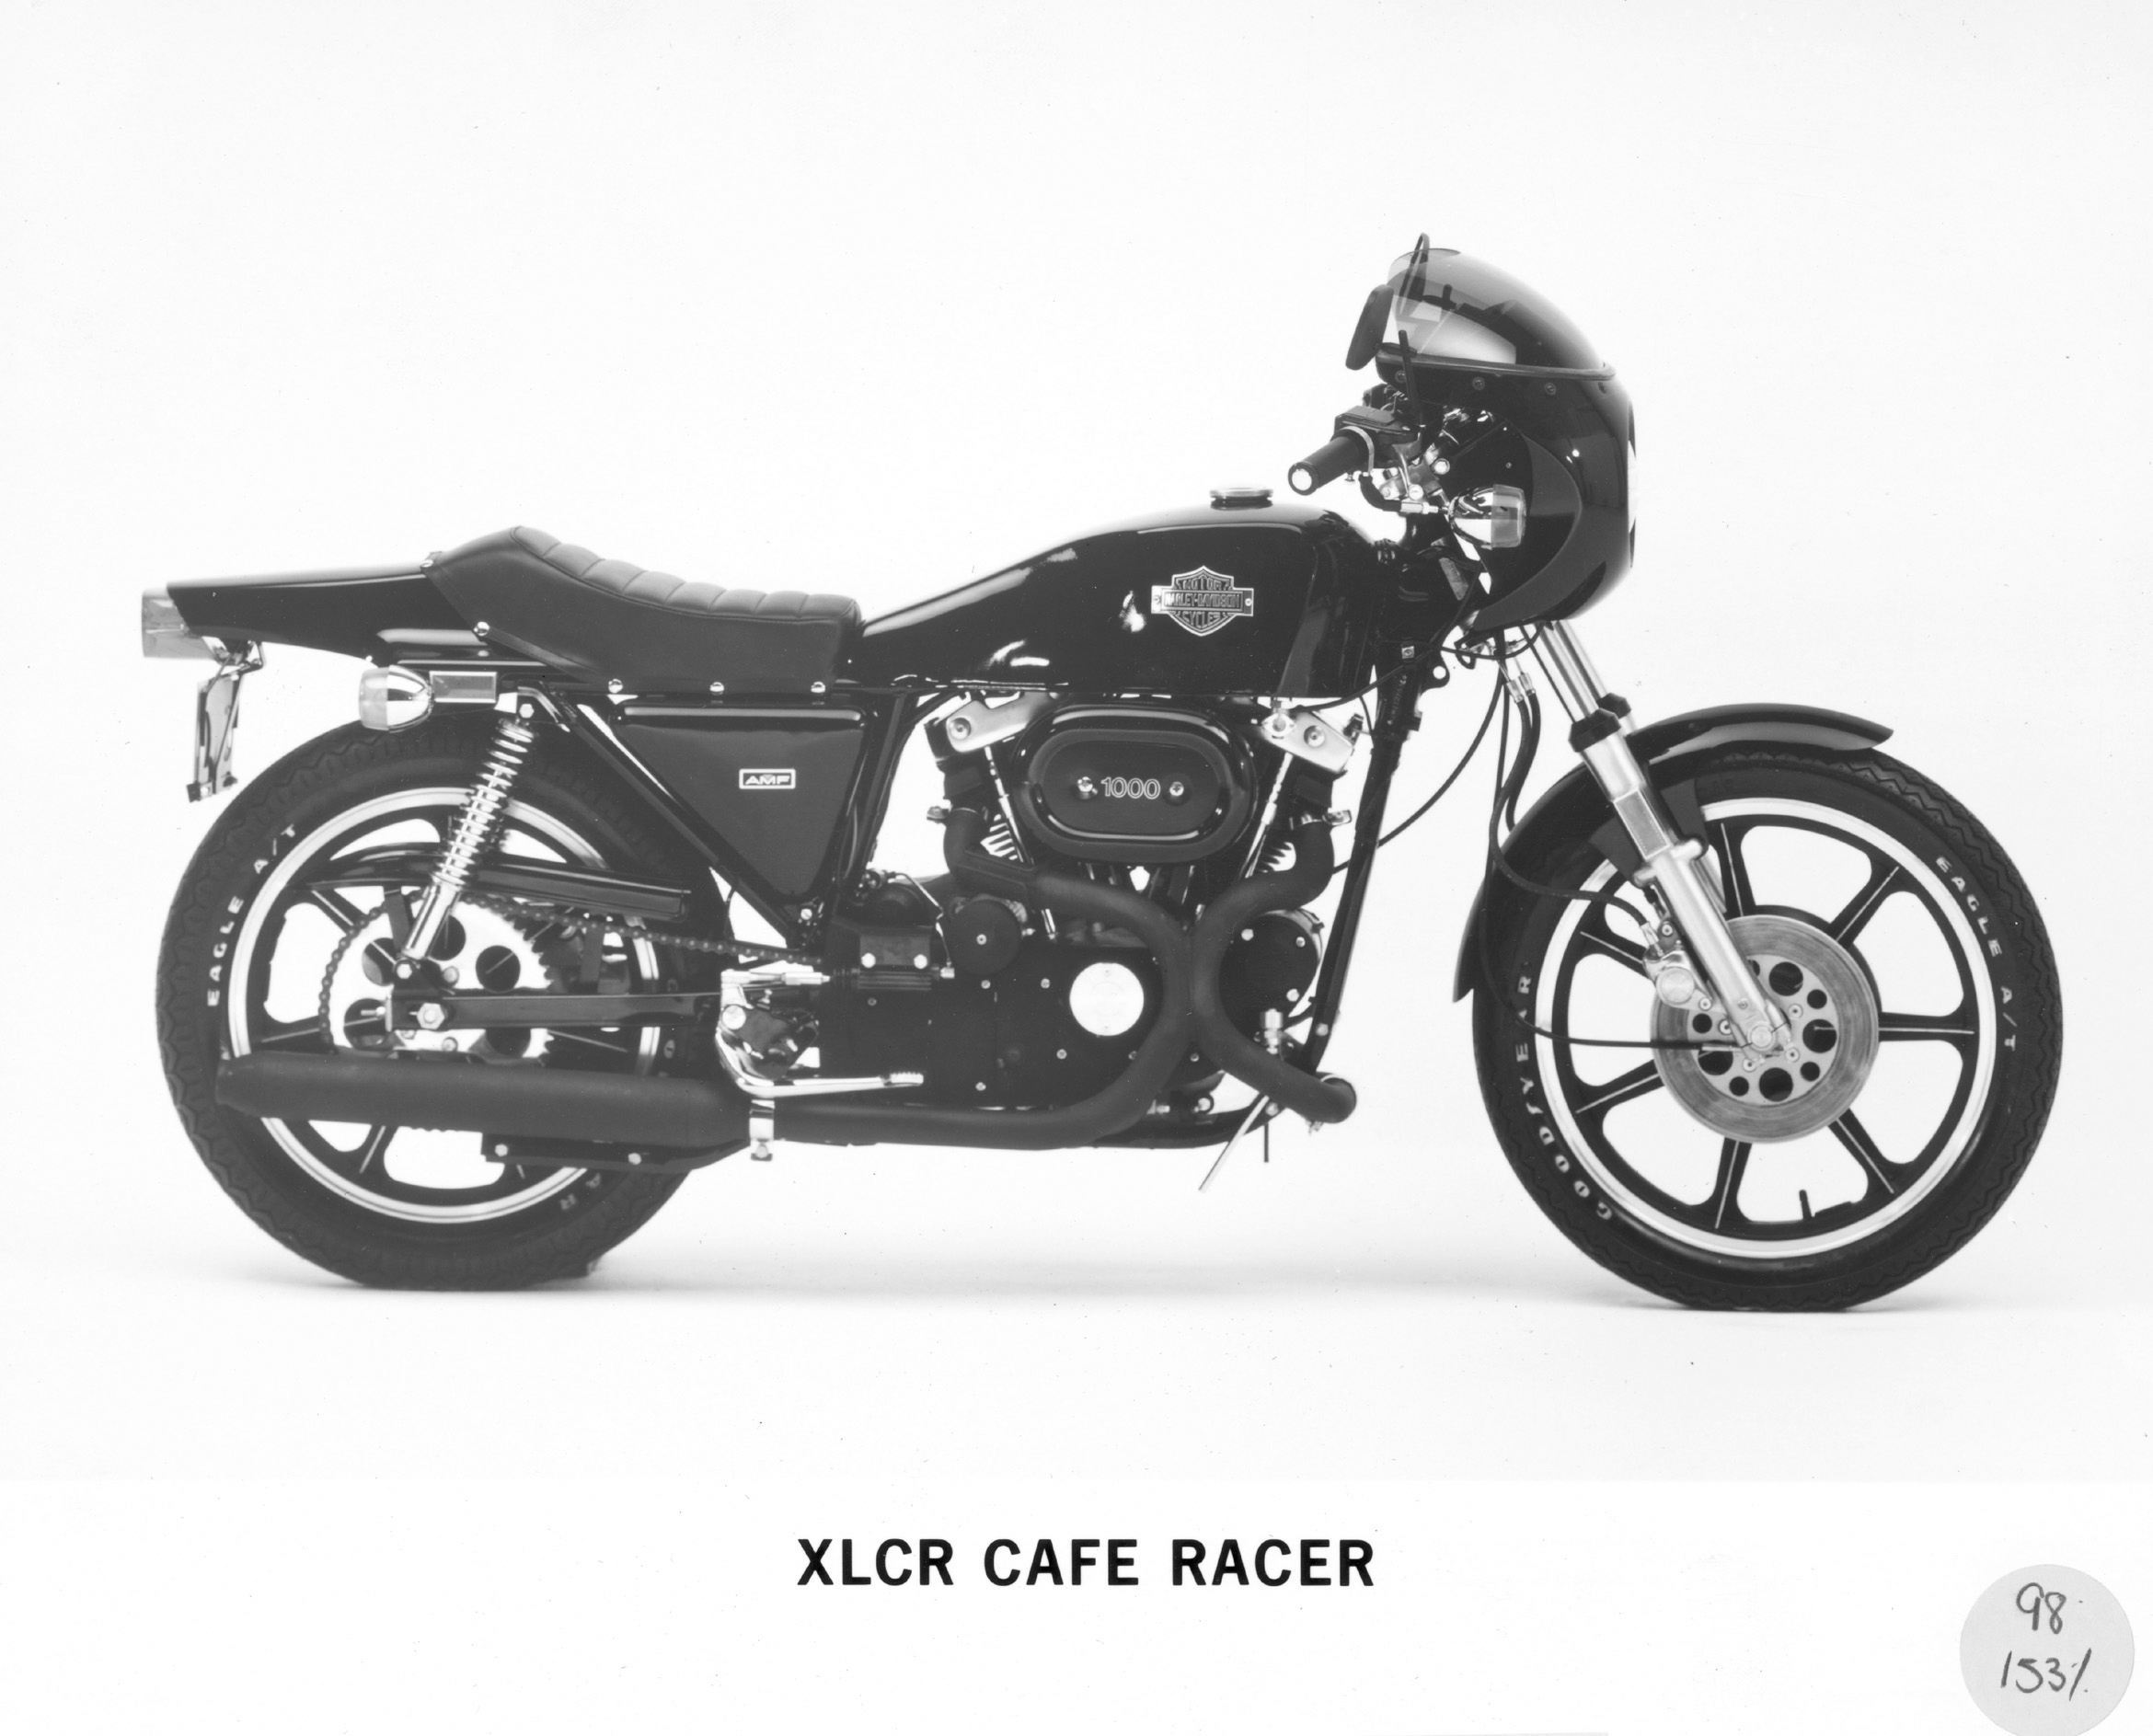 The 1977 XLCR was a cafe racer from the land of bratwurst and Pabst.